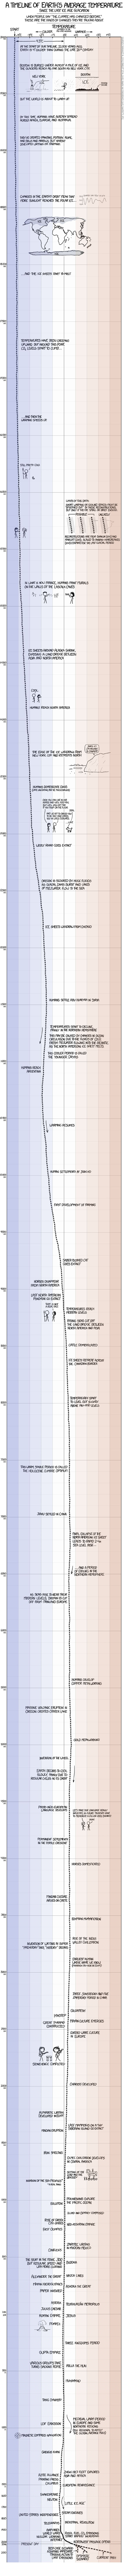 Yes, the climate has always changed. This comic shows why that's no comfort. By Randall Munroe.